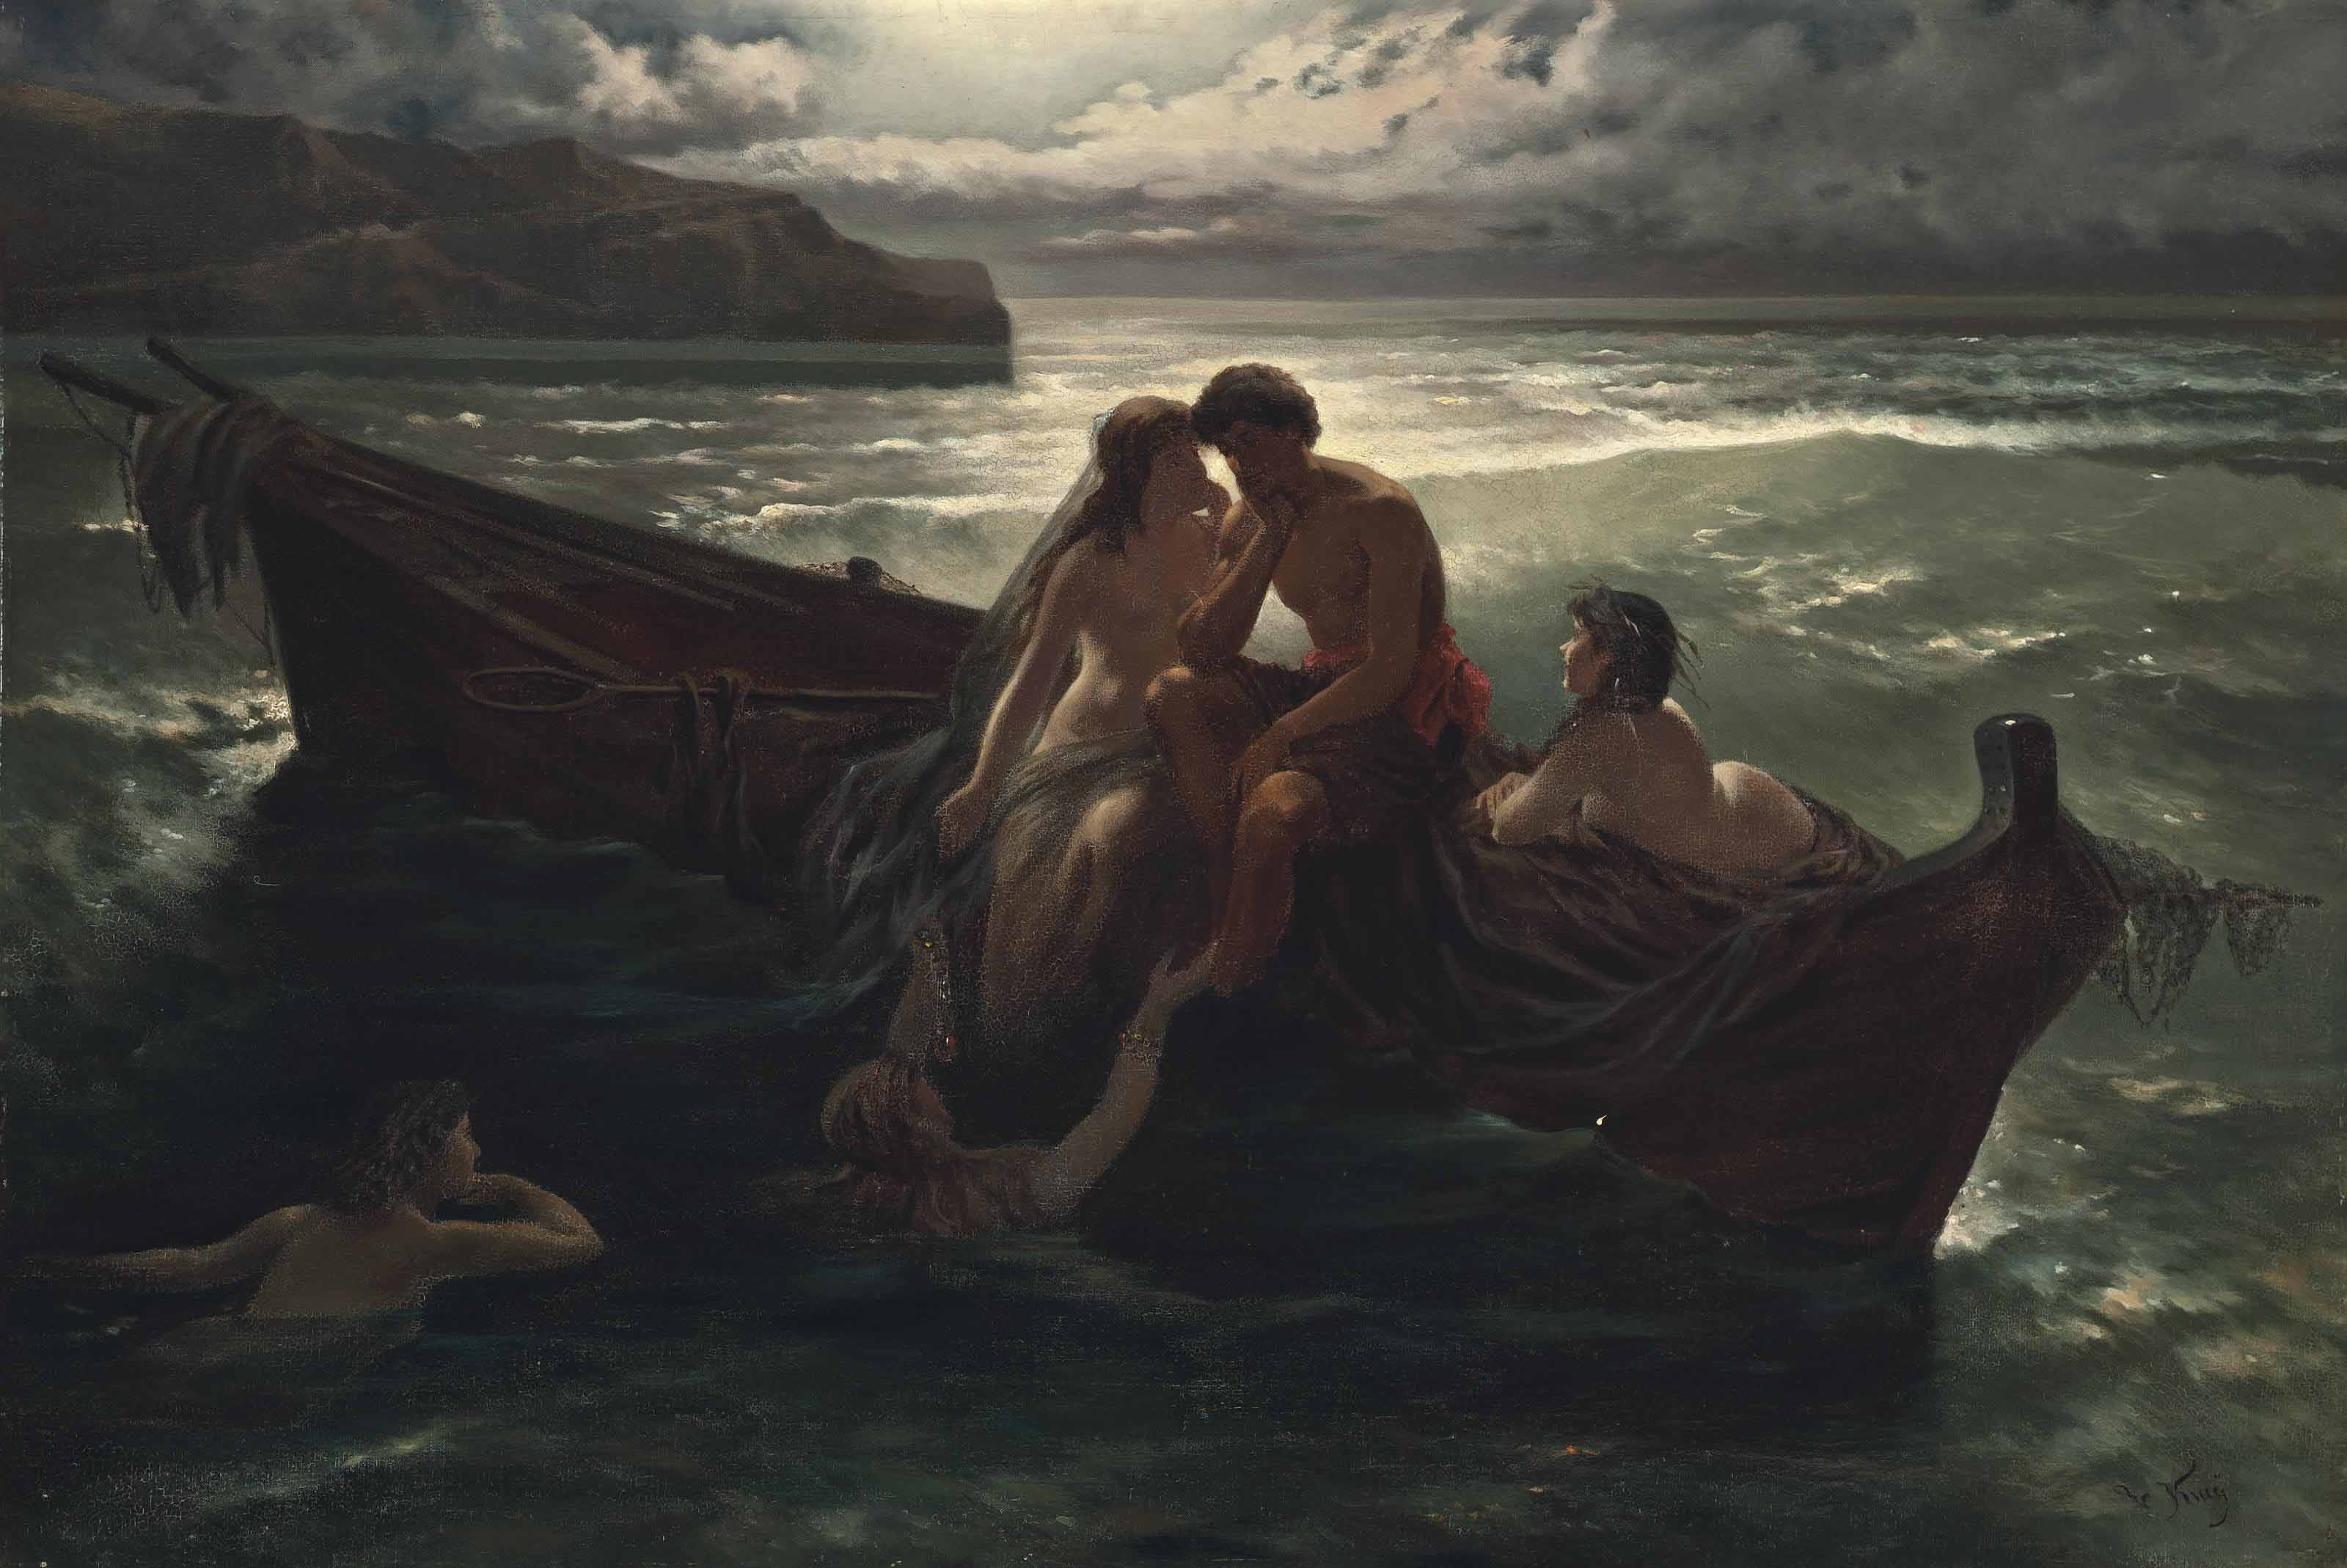 The Sirens' song